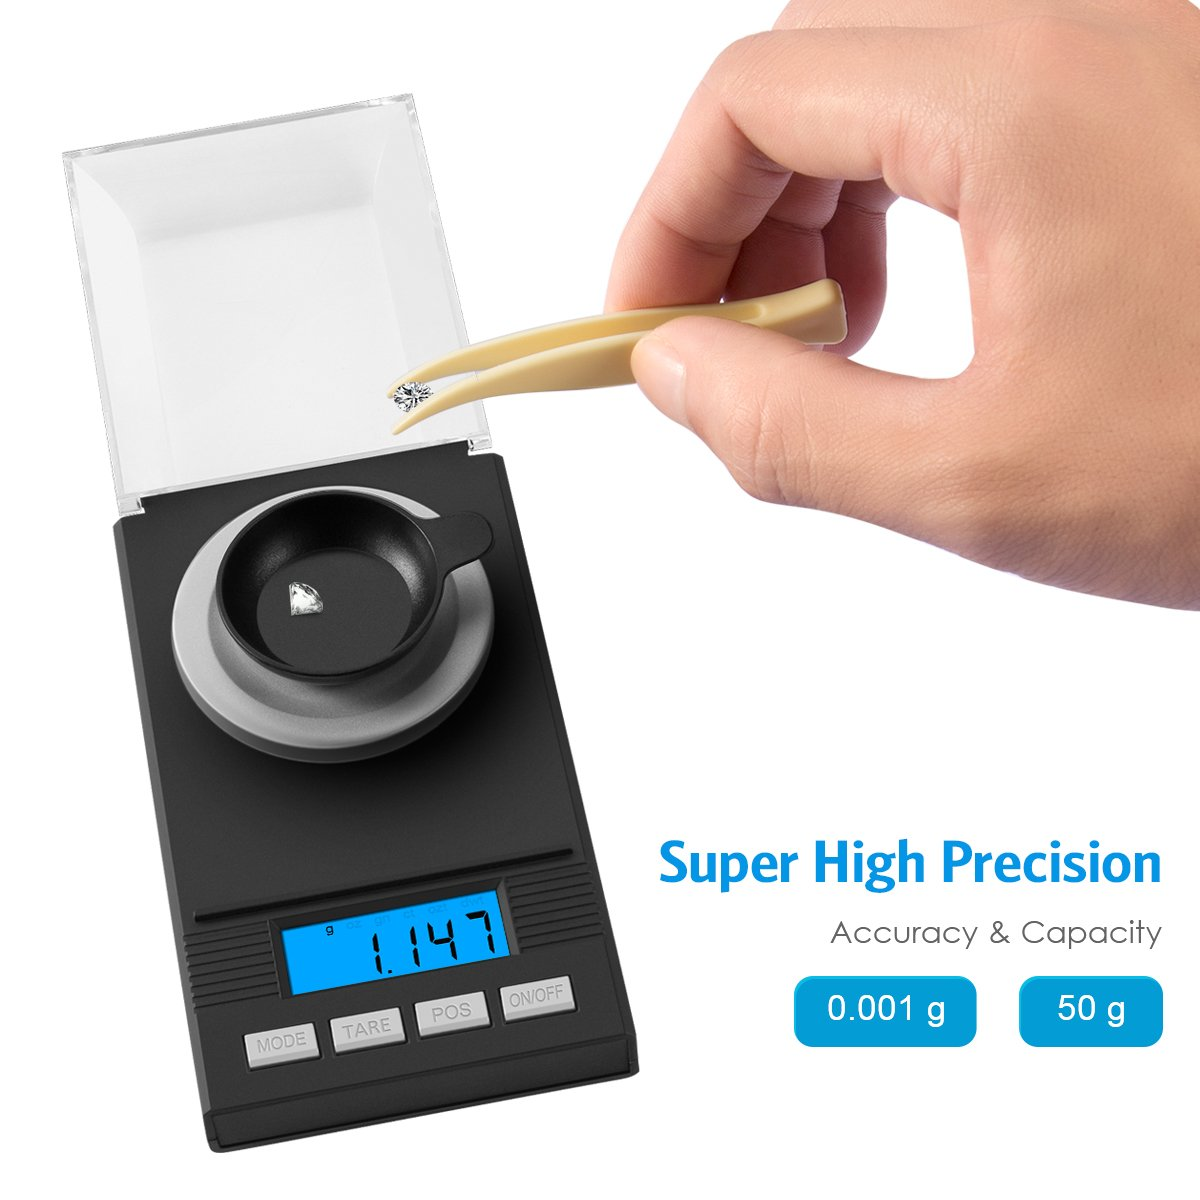 AMIR Digital Milligram Scale, Mini Precise Jewelry Scale, 50g/ 0.001g Pro Lab Scale with Calibration Weights Tweezers and Weighing Pans, 6 Units, Tare & PCS Function, Auto Off, for Gems, Diamond, etc by AMIR (Image #2)